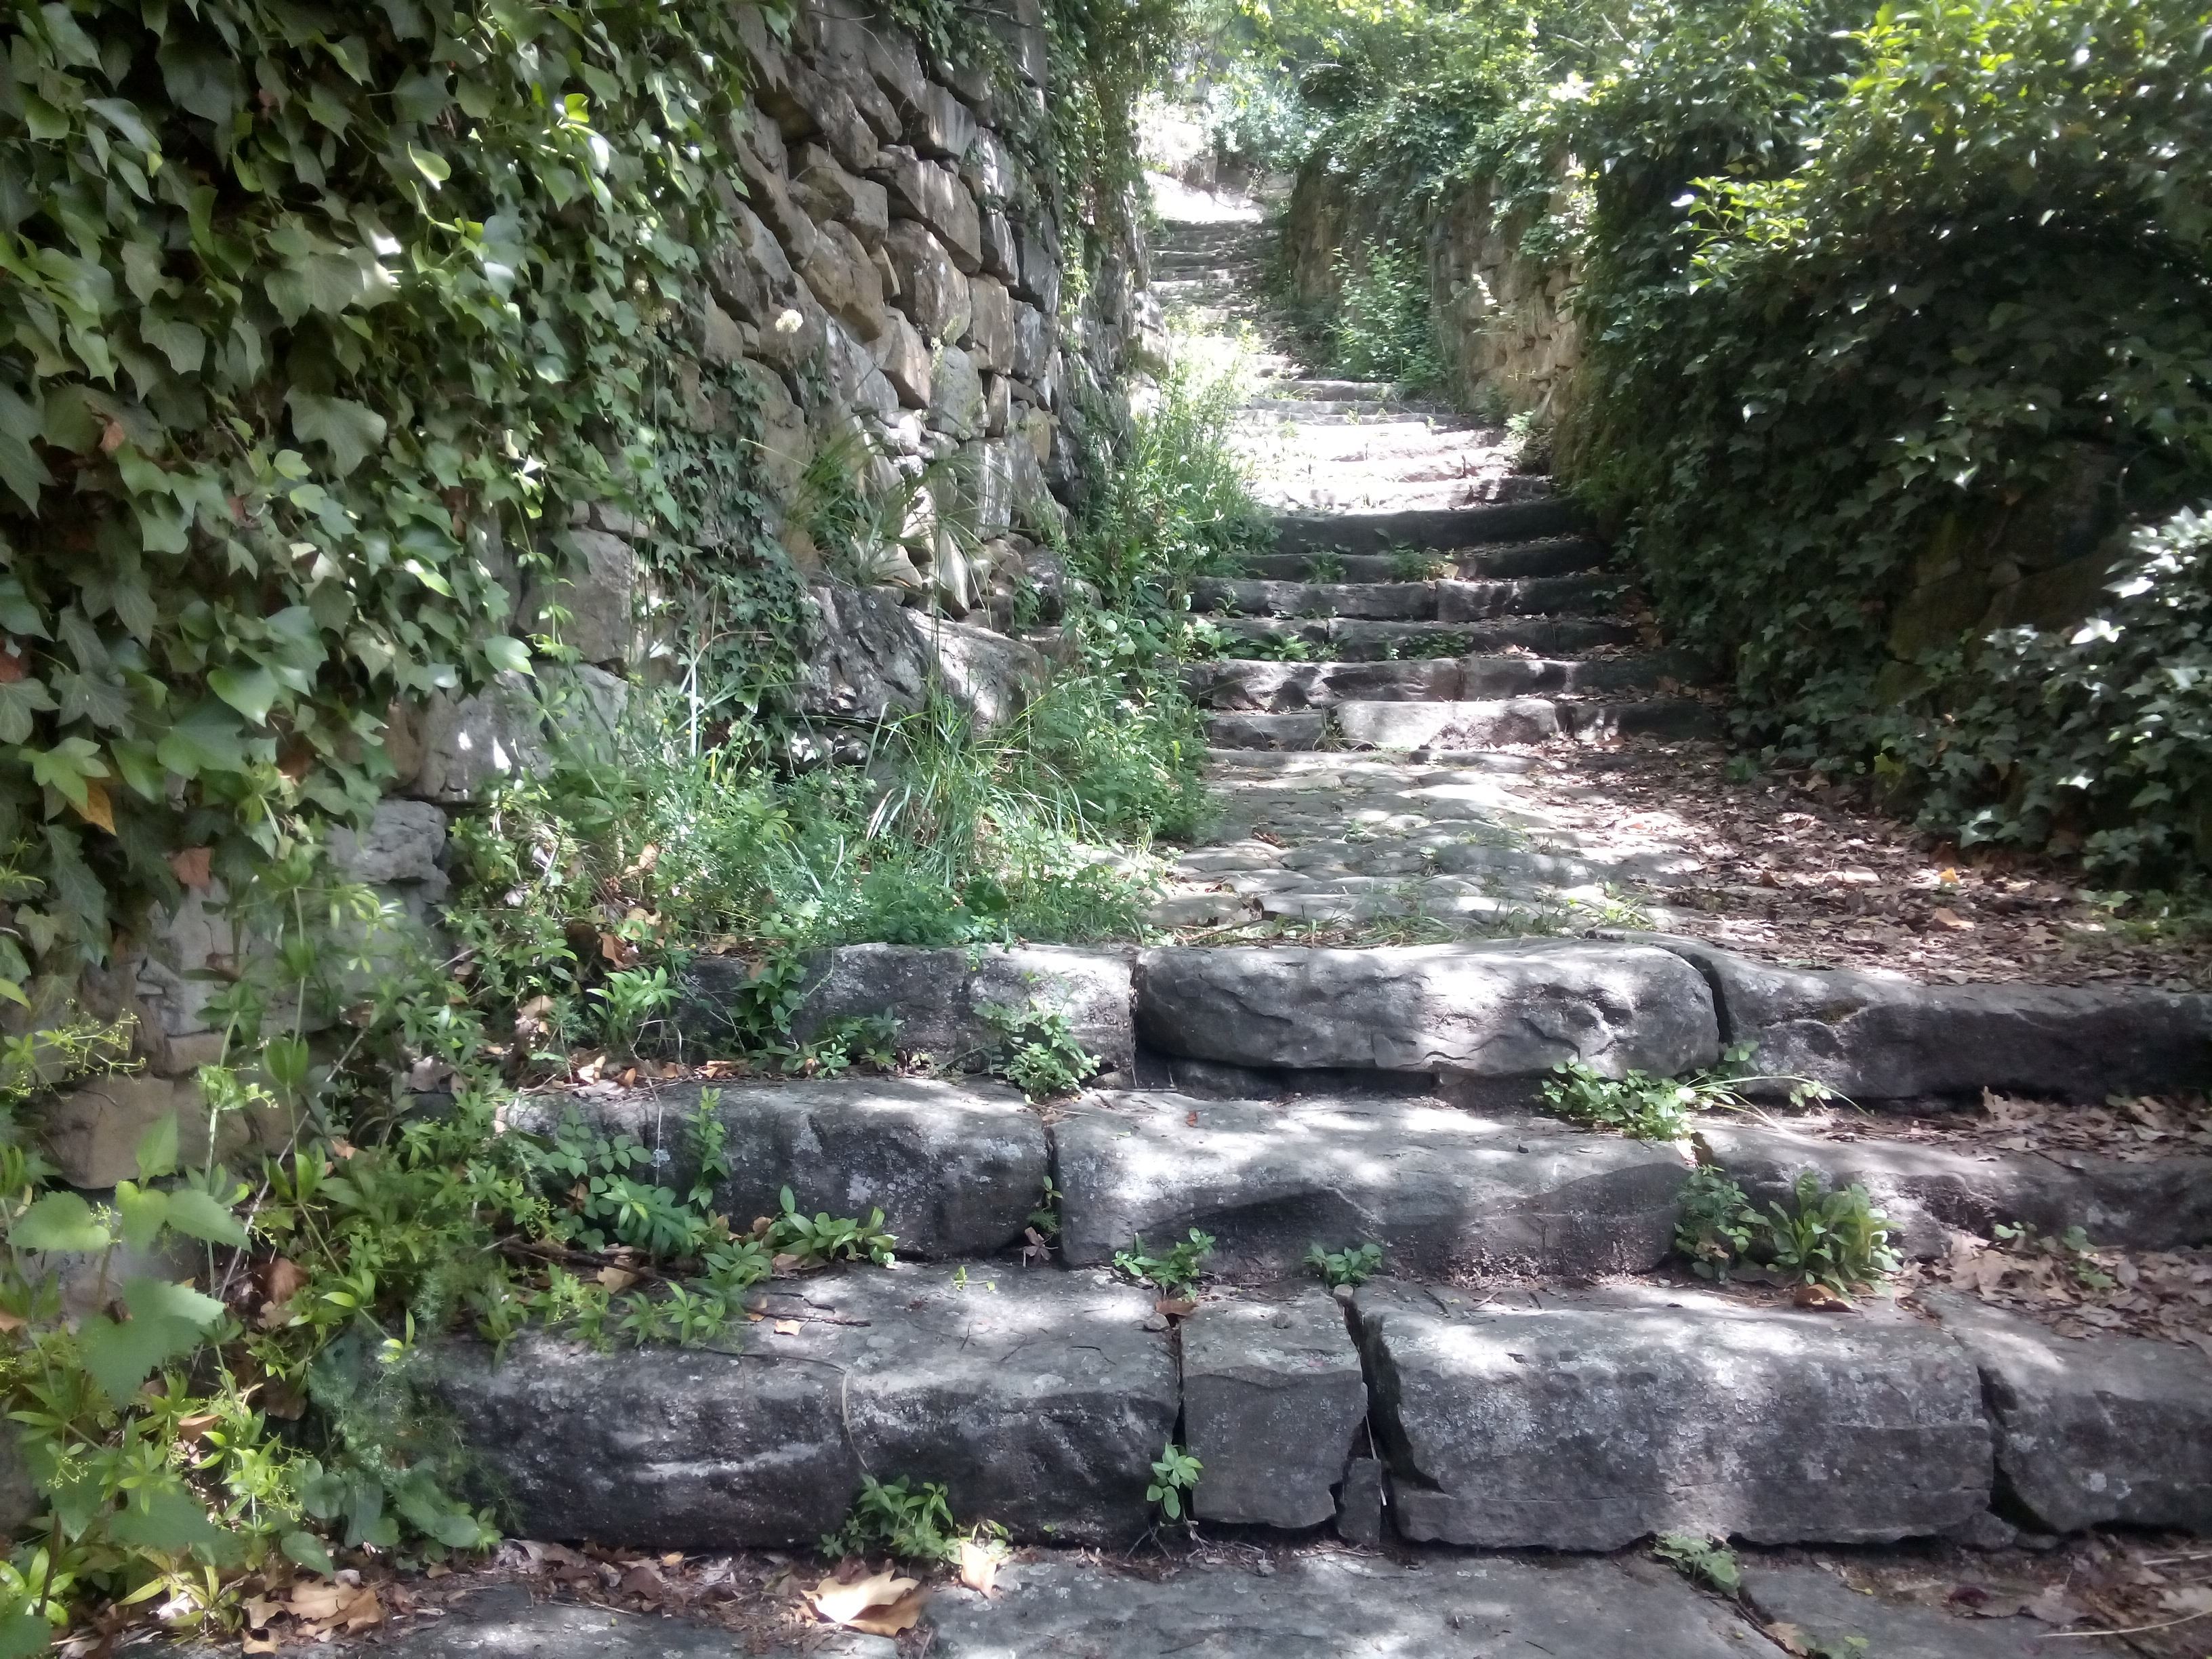 Stone steps with grass